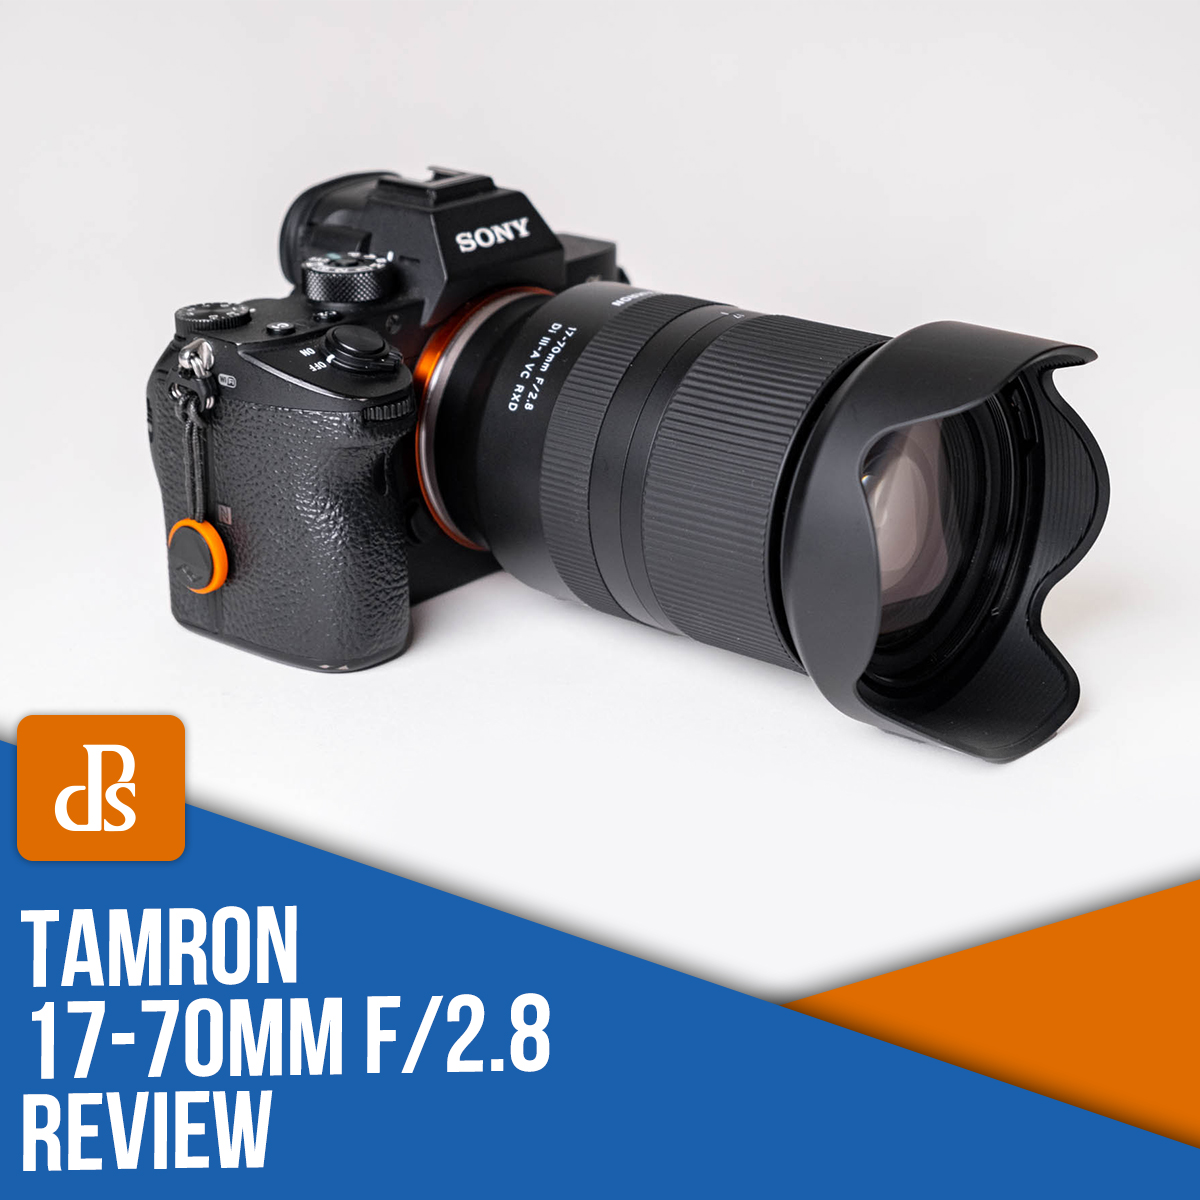 Tamron 17-70mm f/2.8 for Sony review